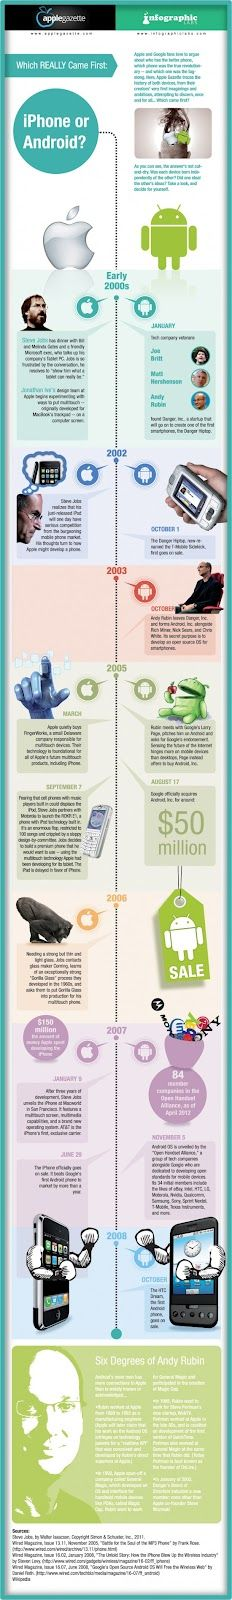 [Infographic] Android Vs iPhone: Which Came First?   The Web Resources